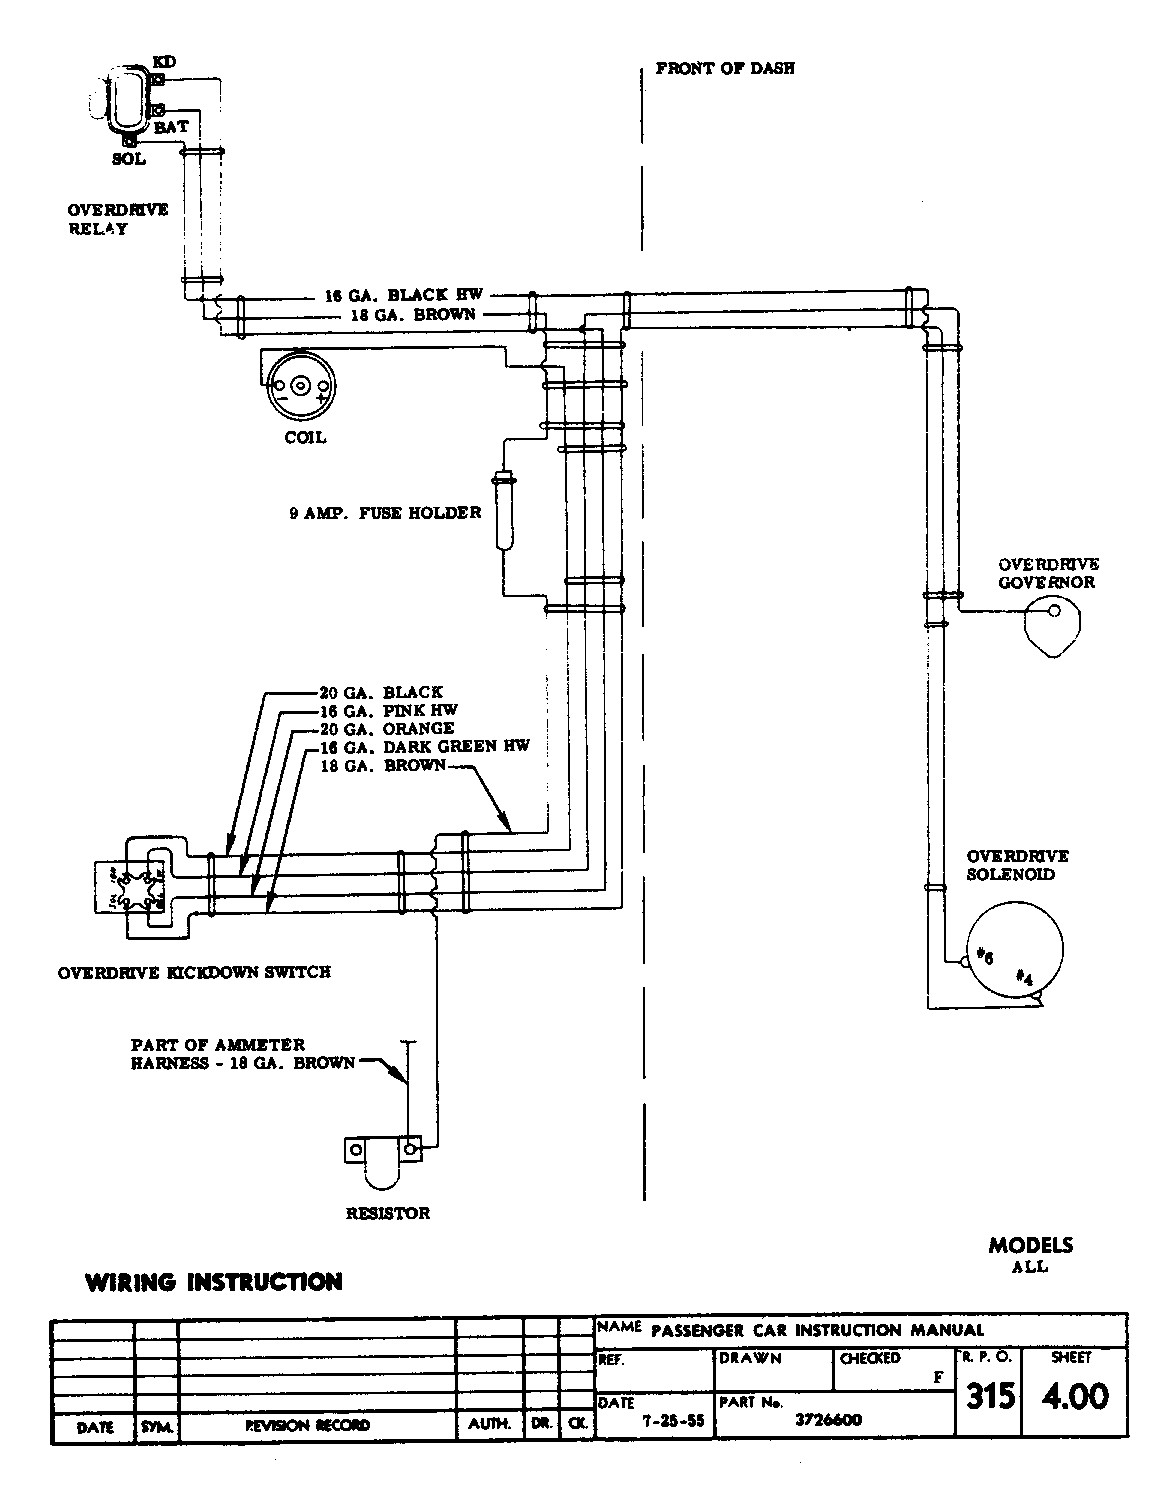 1955 Chevy Wiring Diagram On Overdrive Trusted Bel Air Delco Remy Voltage Regulator Unique 1956 Chevrolet